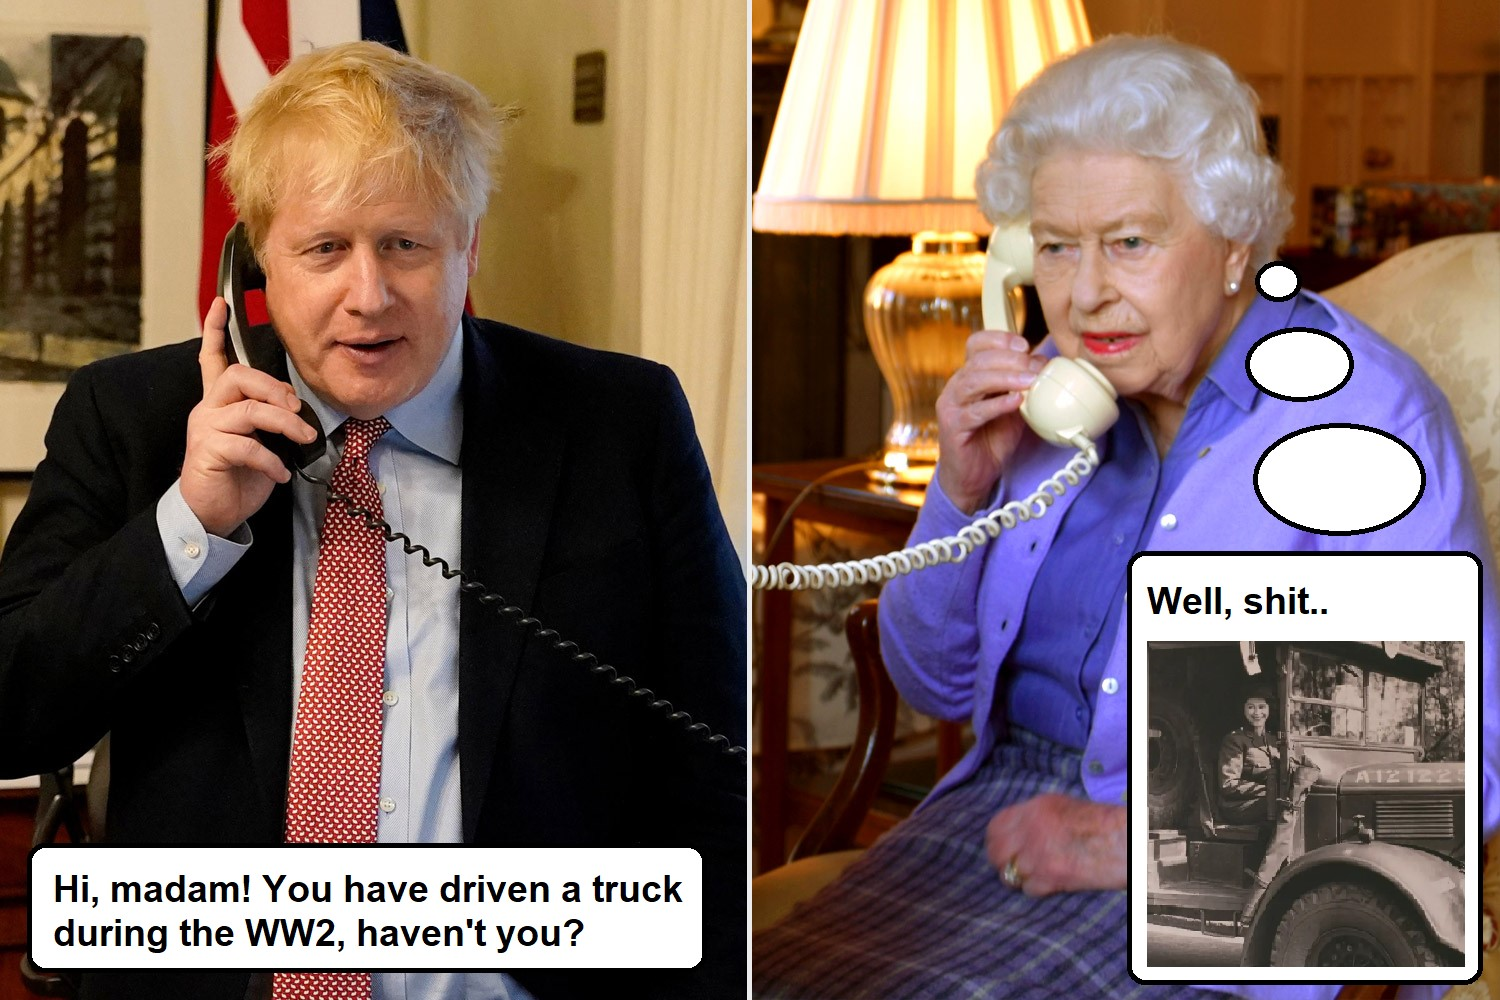 Hi, madam! You have driven a truck during the WW2, haven't you? Well, shit ...